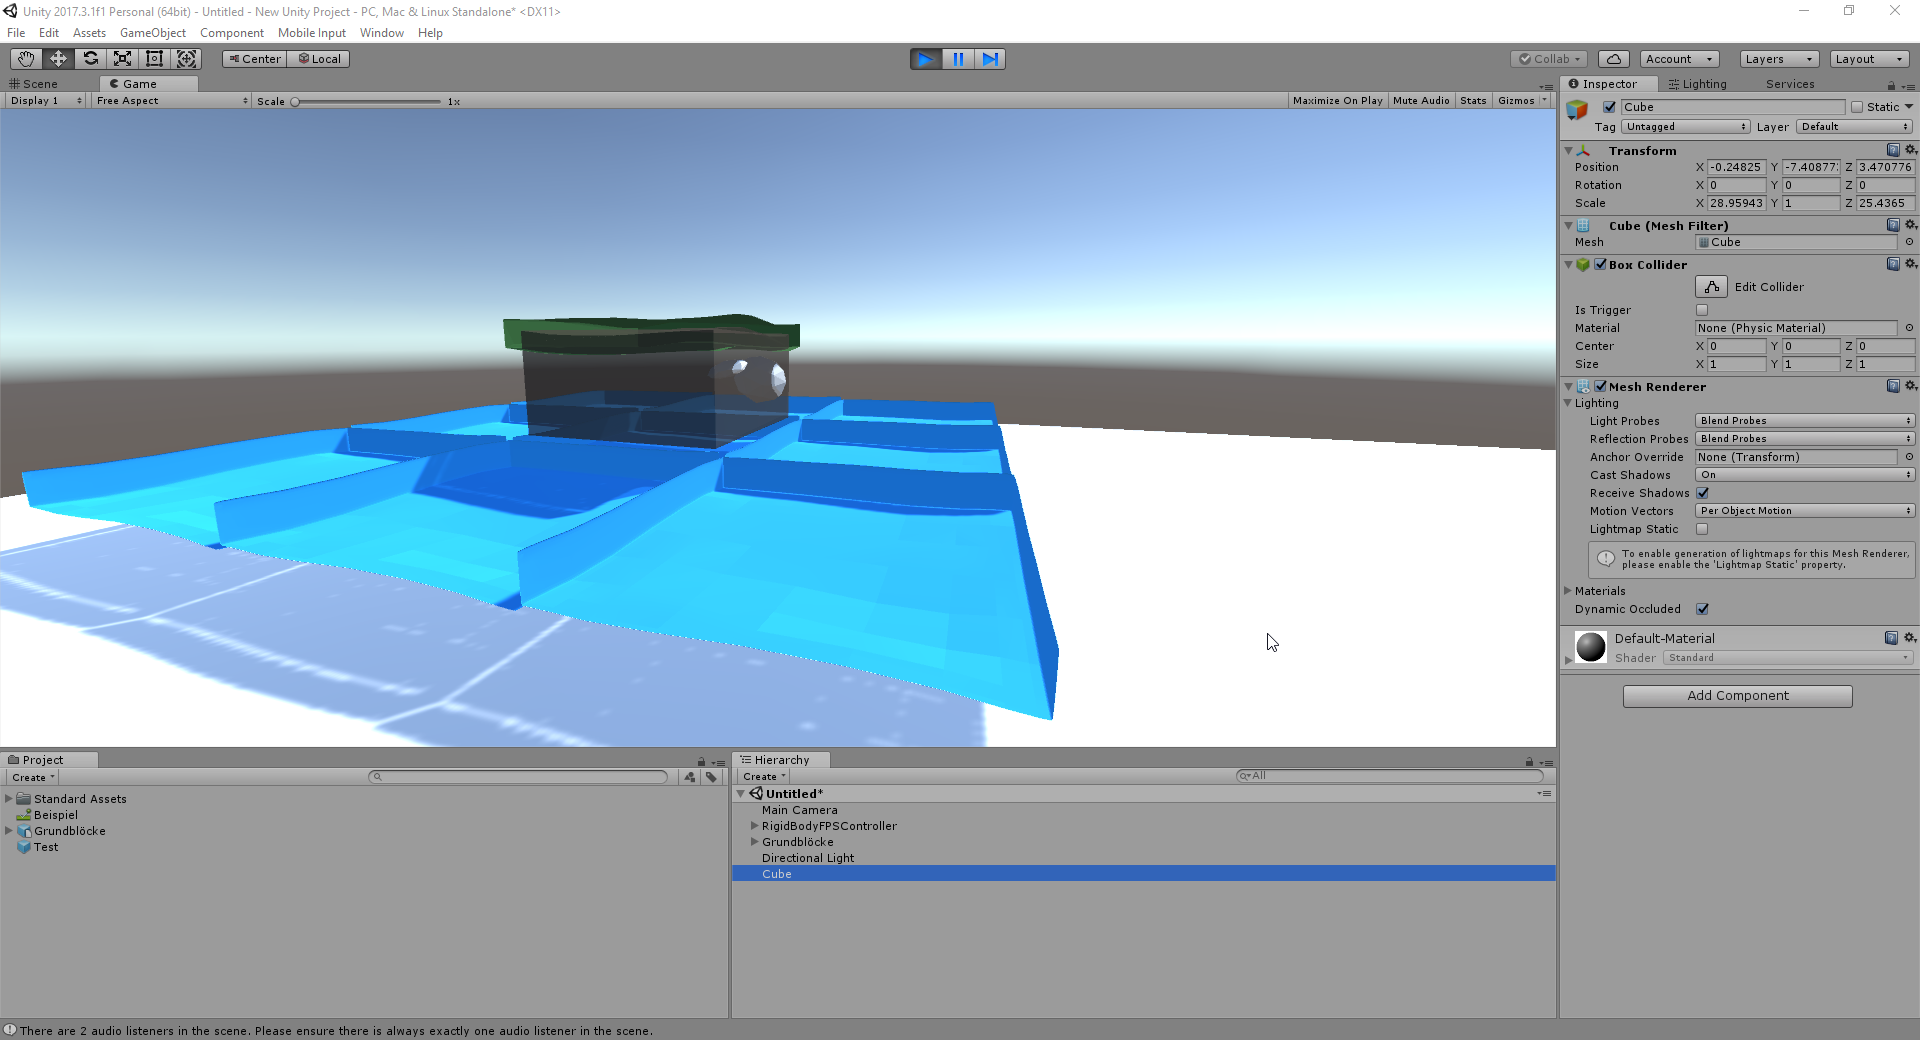 Models are partially invisible after import from blender - Unity Answers